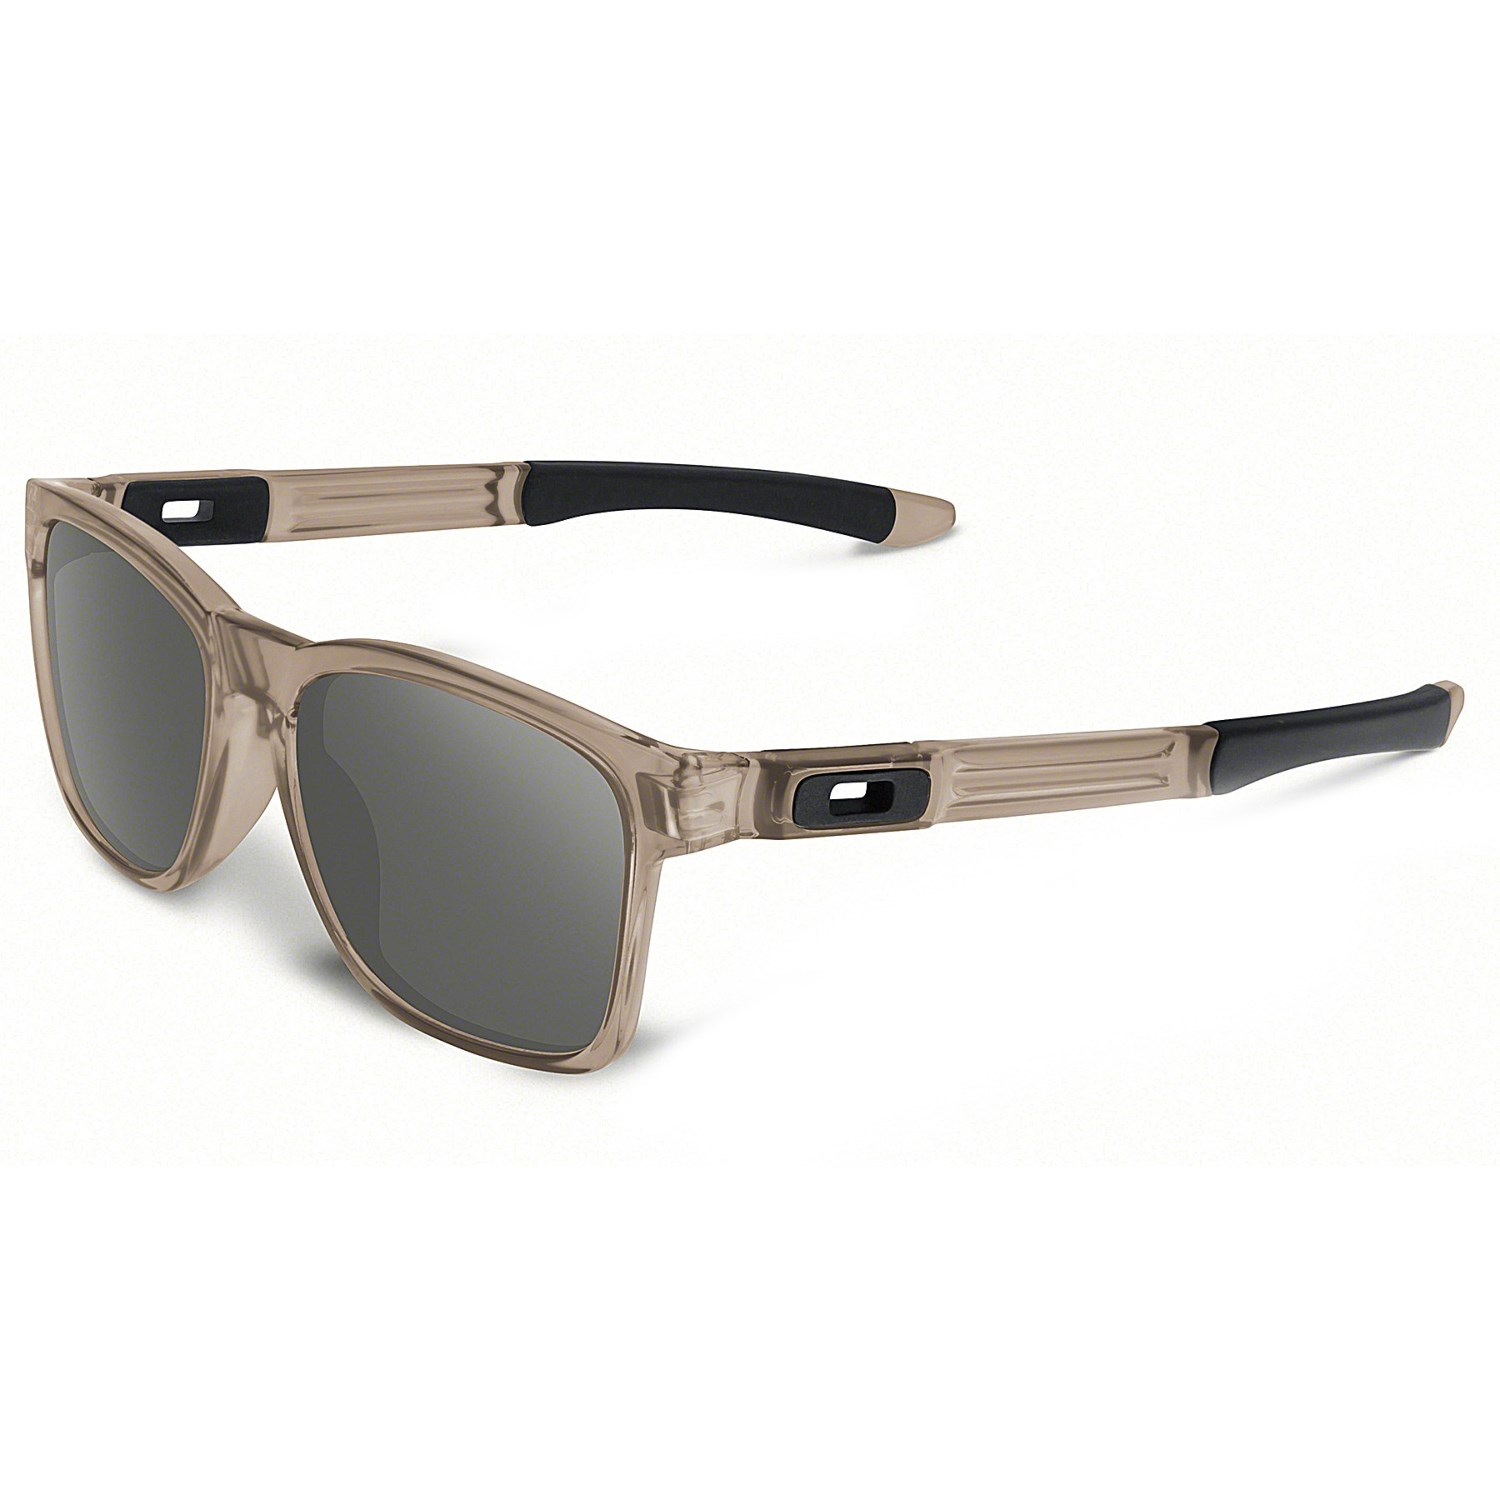 oakley catalyst sunglasses for men and women save 38